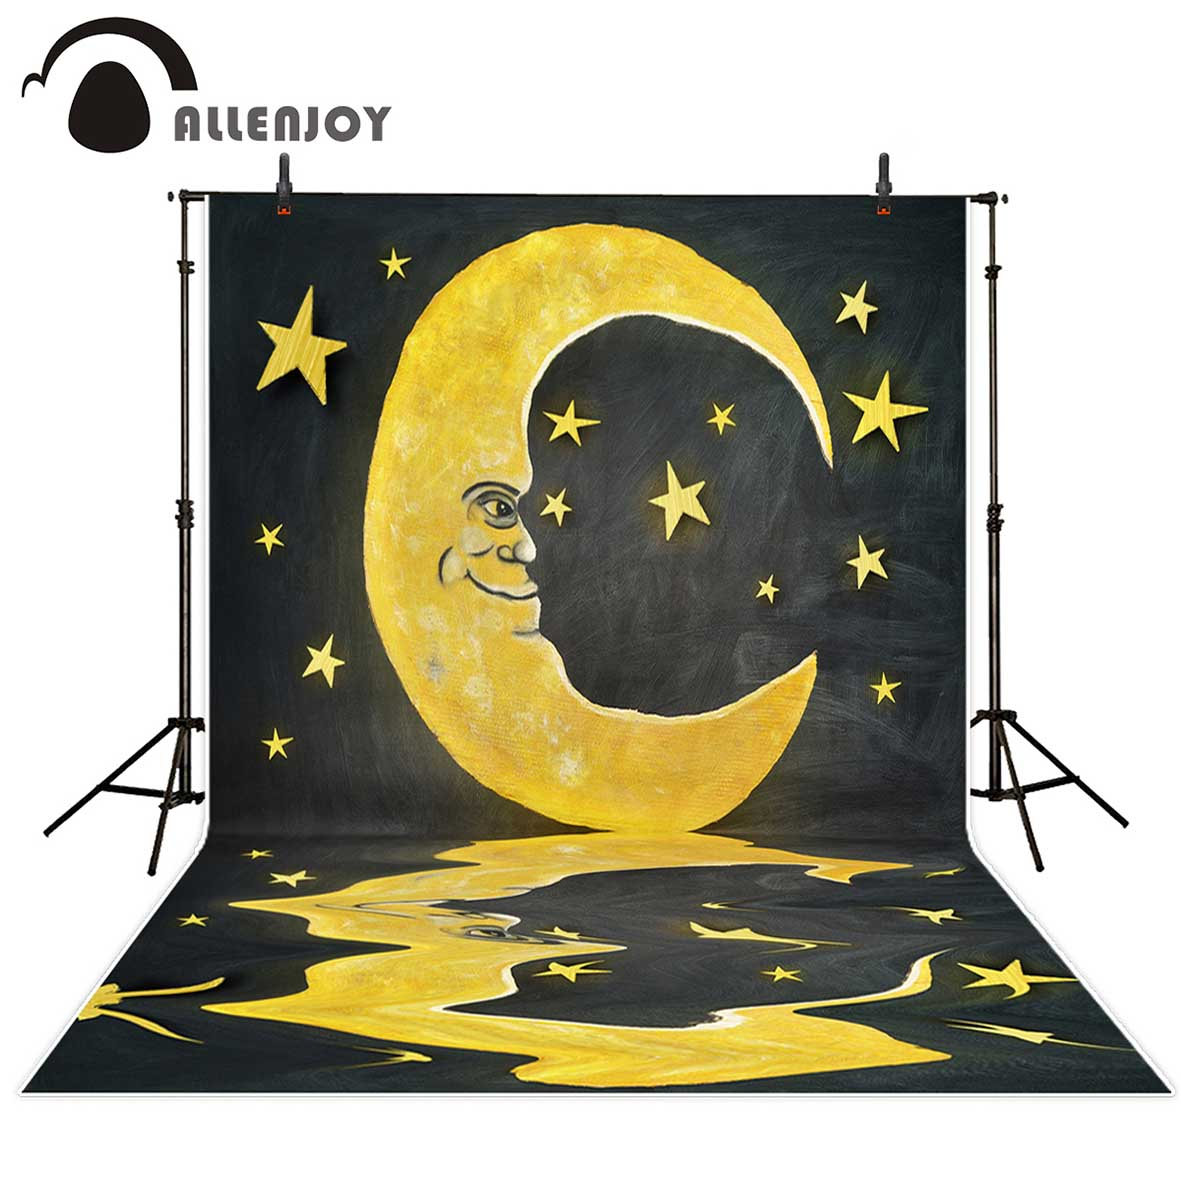 Allenjoy backgrounds for photo studio Moon stars blackboard painting children fairy tale backdrop newborn original design props fairy tale arch printed newborn baby photo backdrops art fabric backdrop for studio children photography backgrounds d 9822